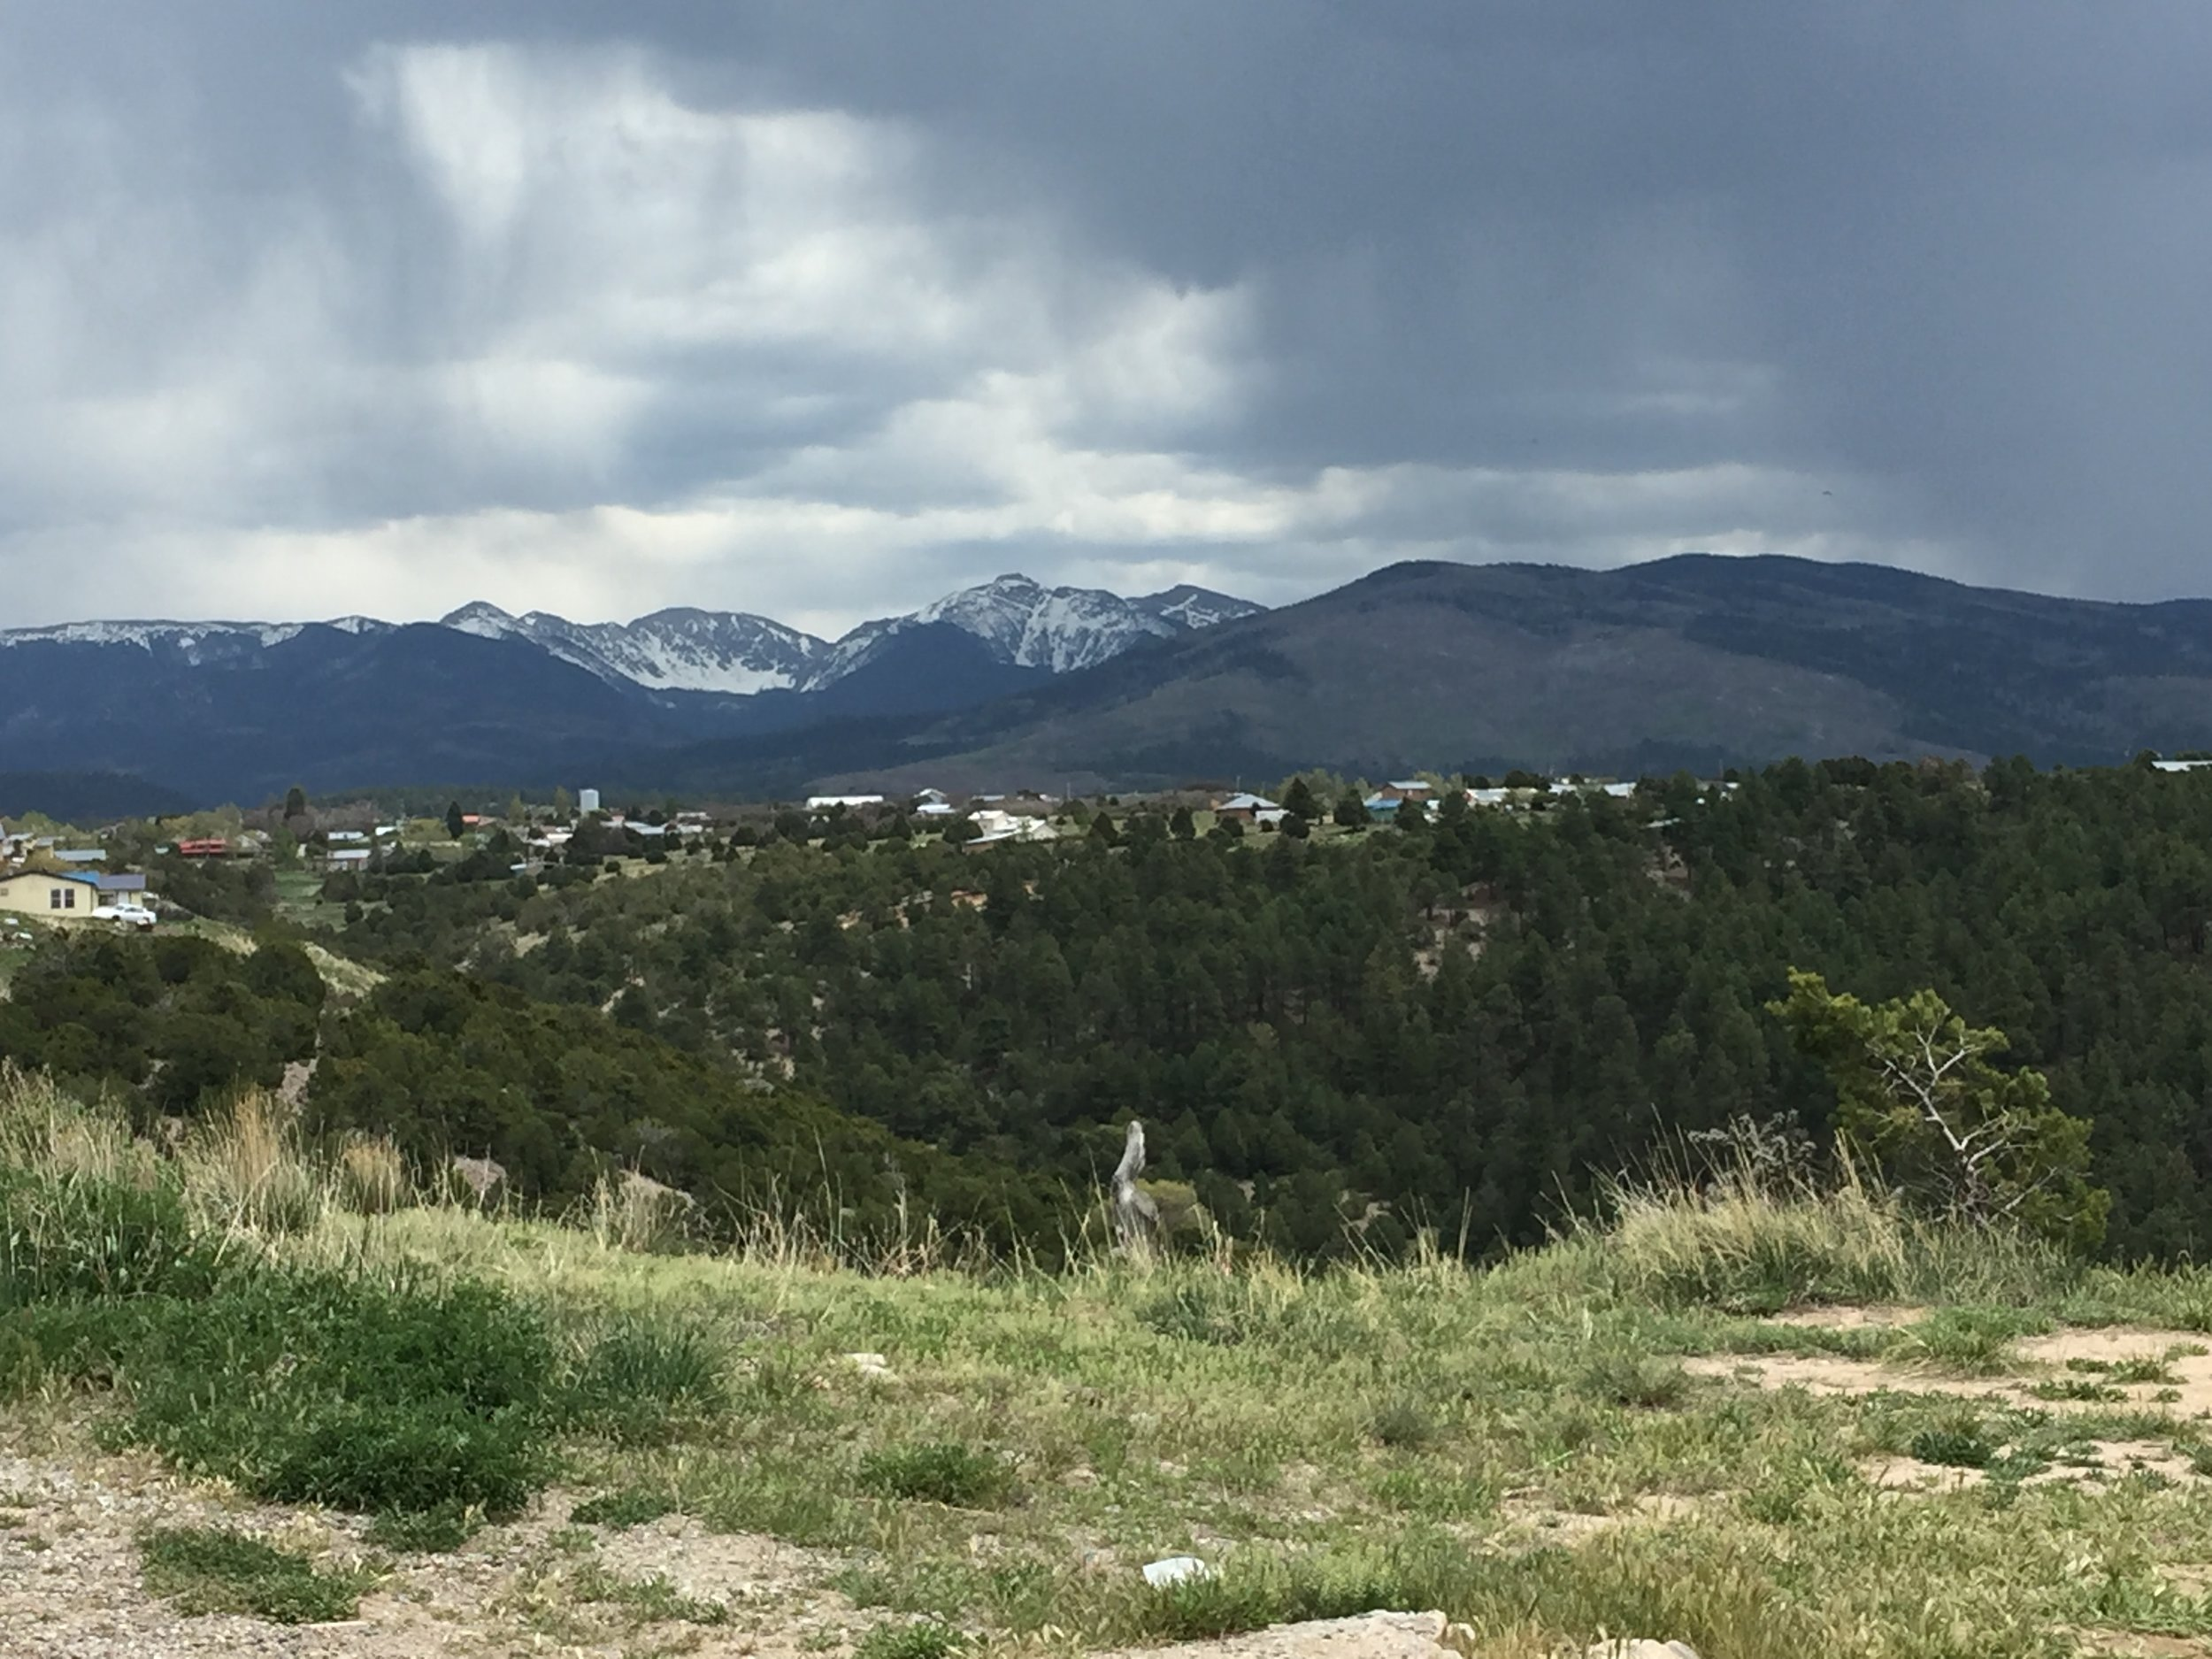 Storms rolling in over the Sangre de Cristo's while we ate lunch in Truchas